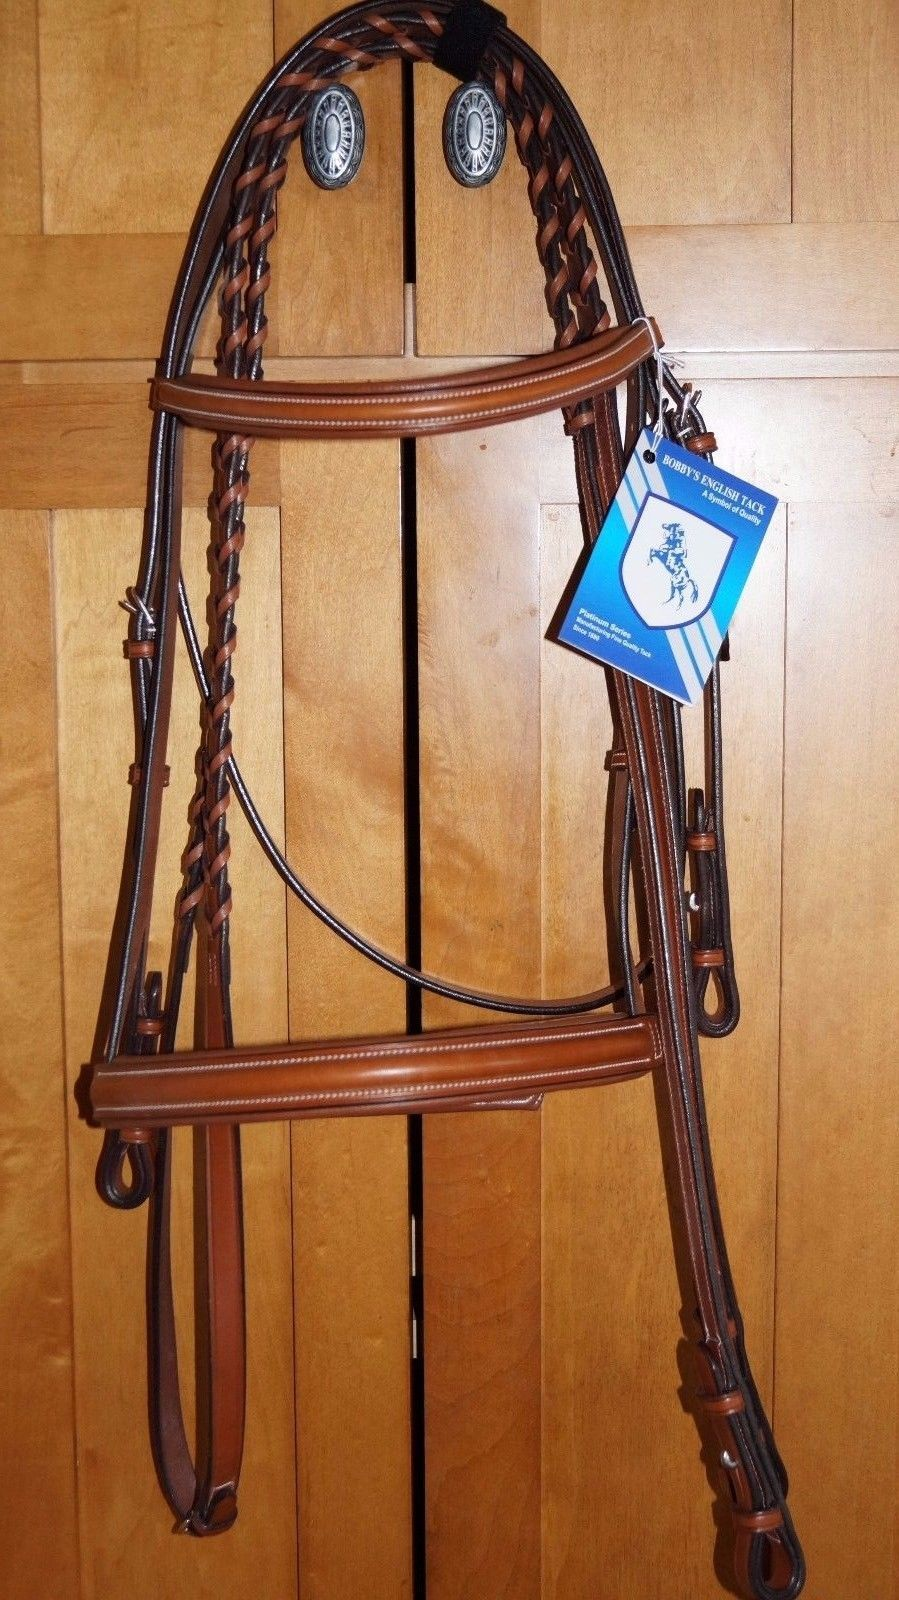 Bobby's Platinum English Leather Light Brown Padded Bridle w/Reins - WB sz